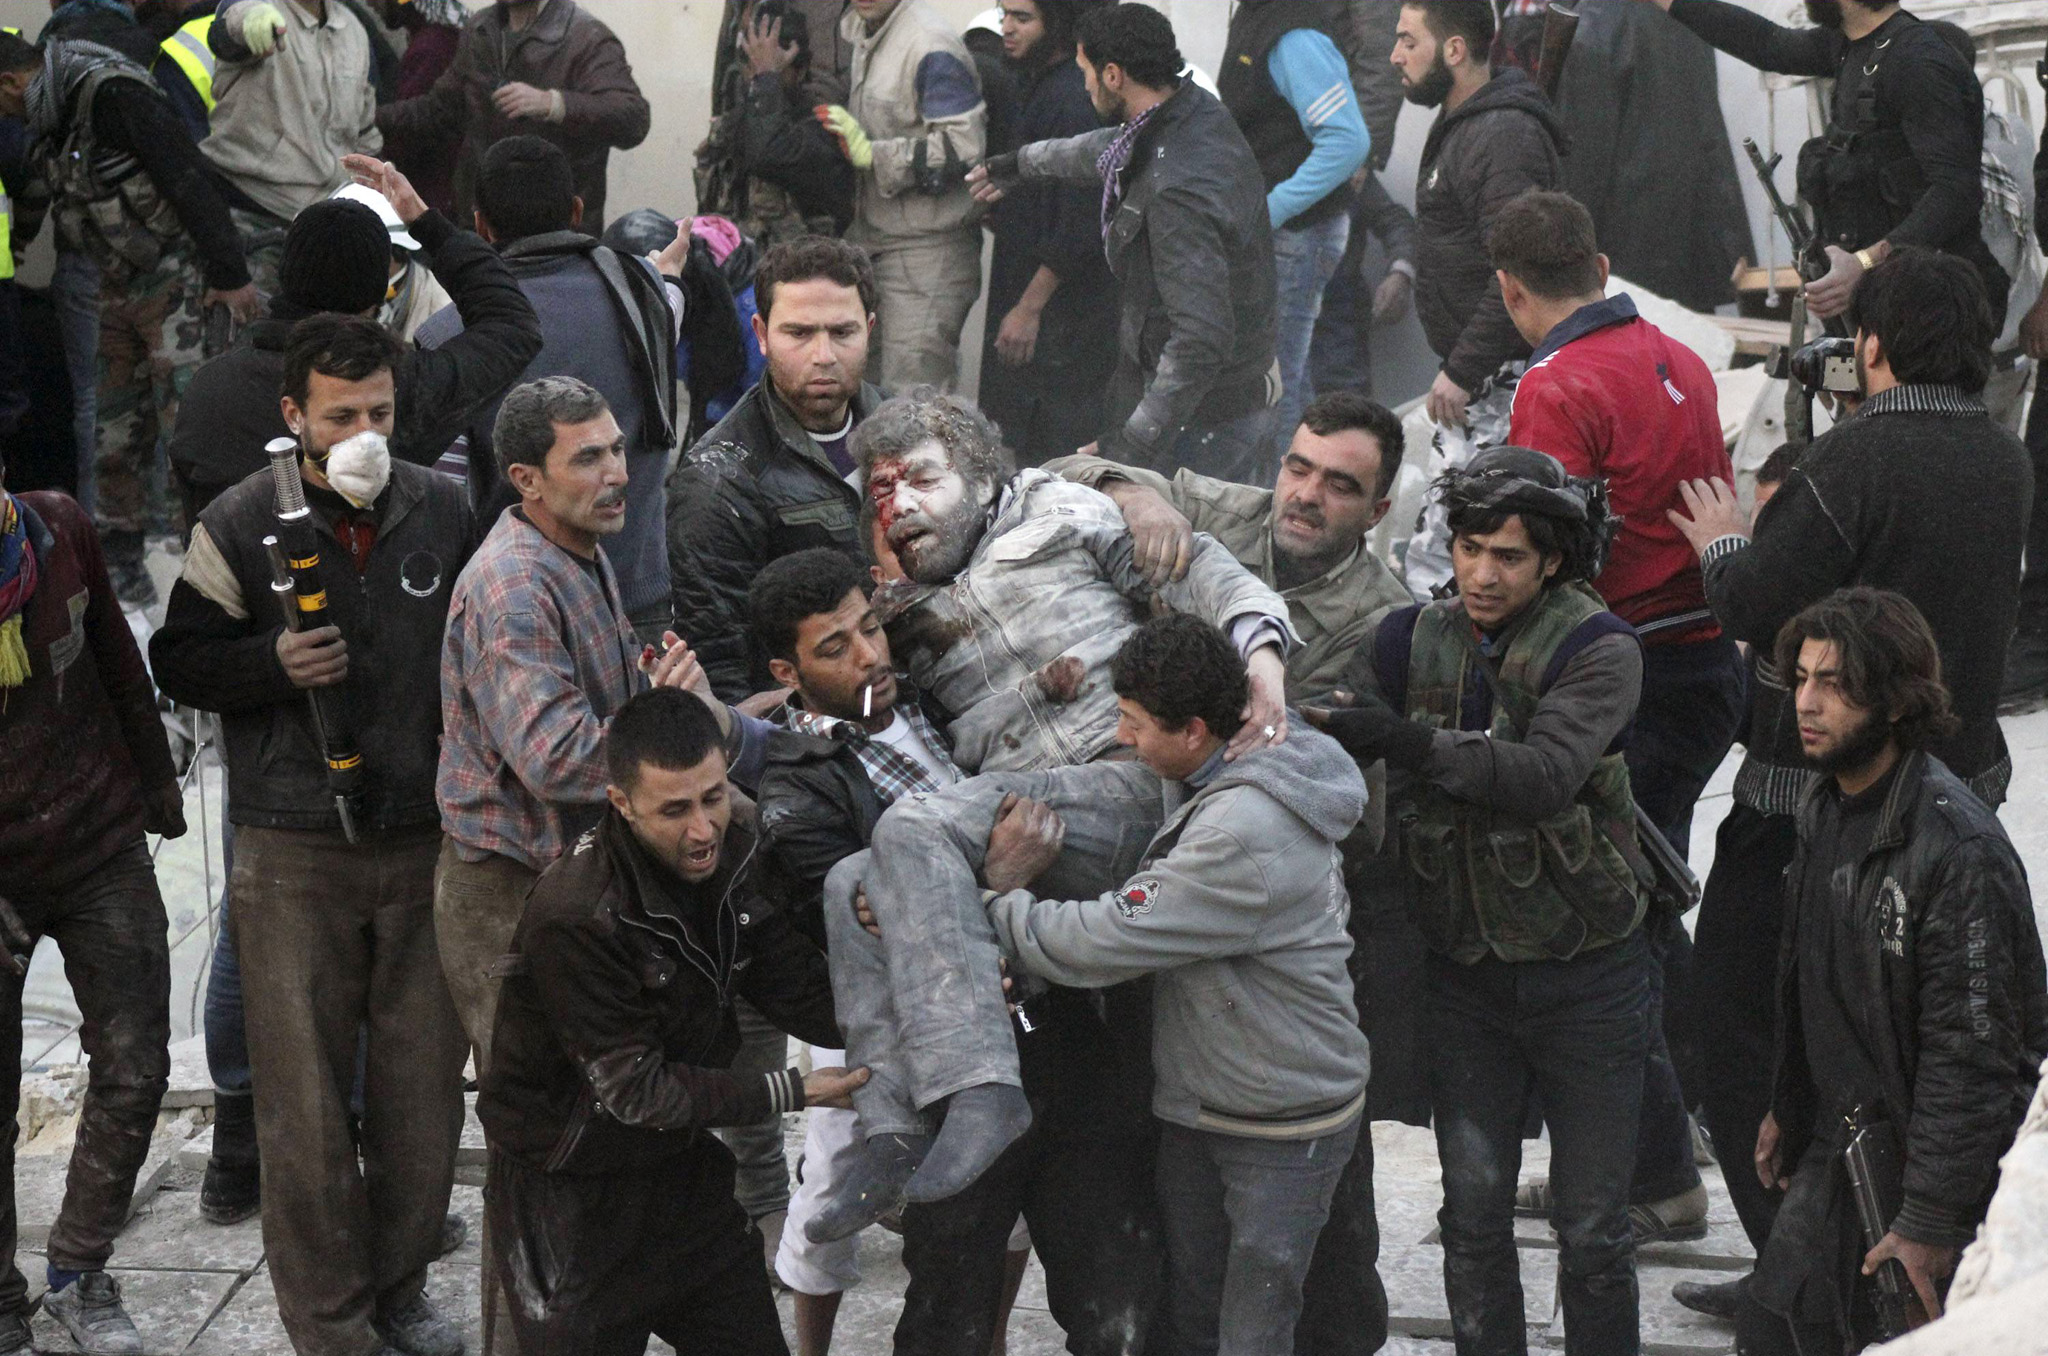 SYR29  Residents carry an injured man that survived shelling after what activists said was an air strike from forces loyal to Syria's President Bashar al-Assad in Takeek Al-Bab area of Aleppo.